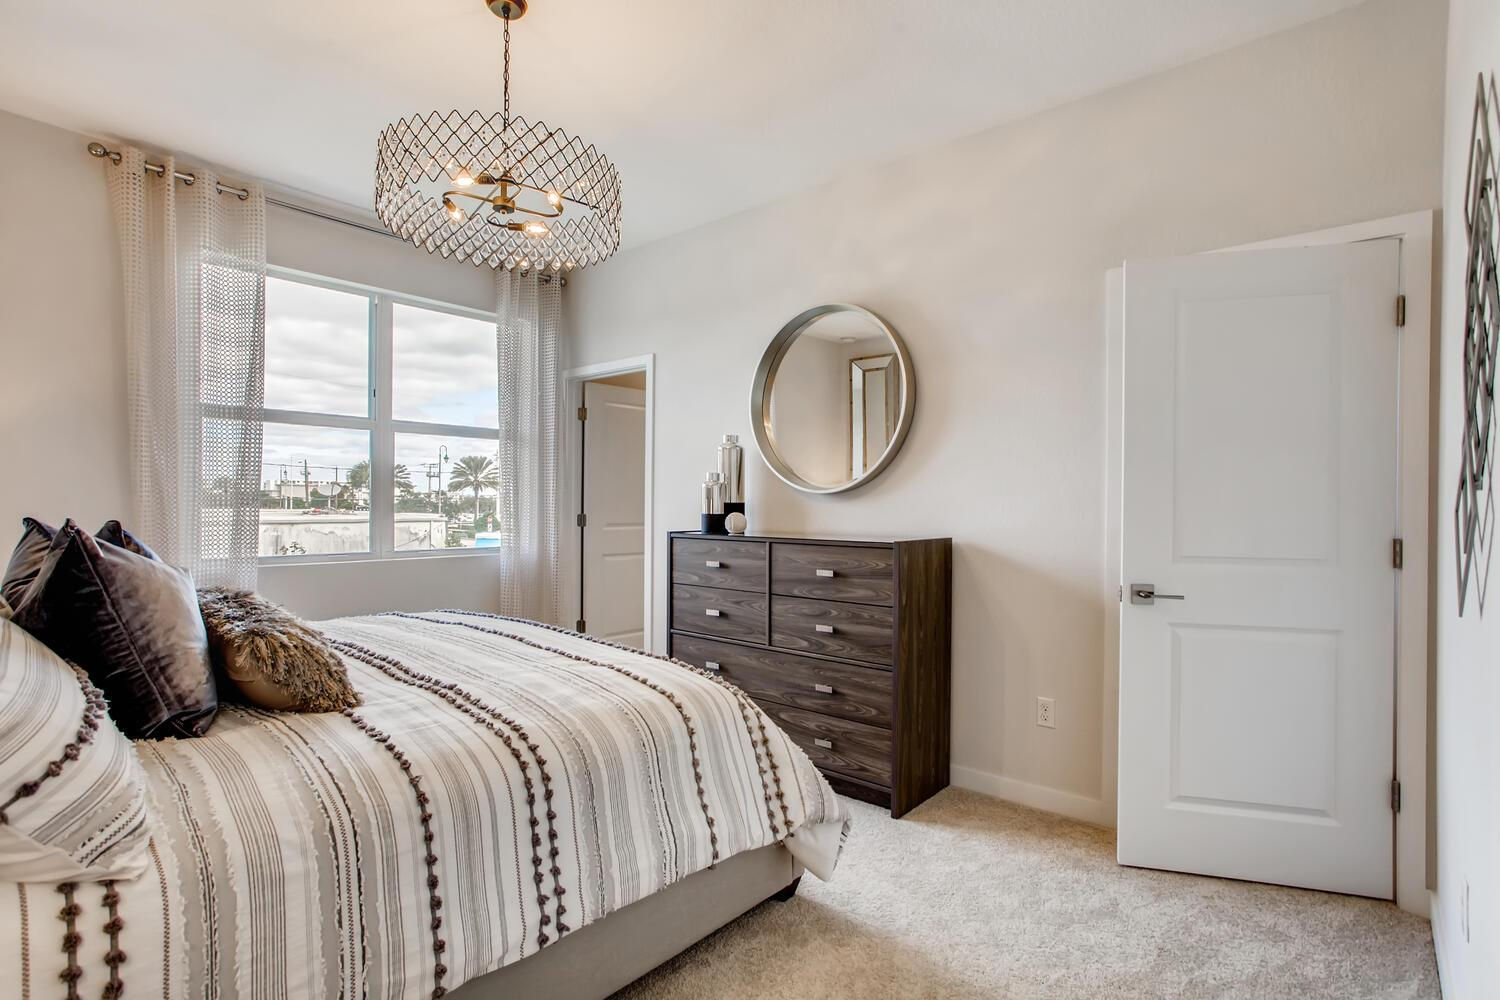 Bedroom featured in the Bondi By D.R. Horton in Palm Beach County, FL